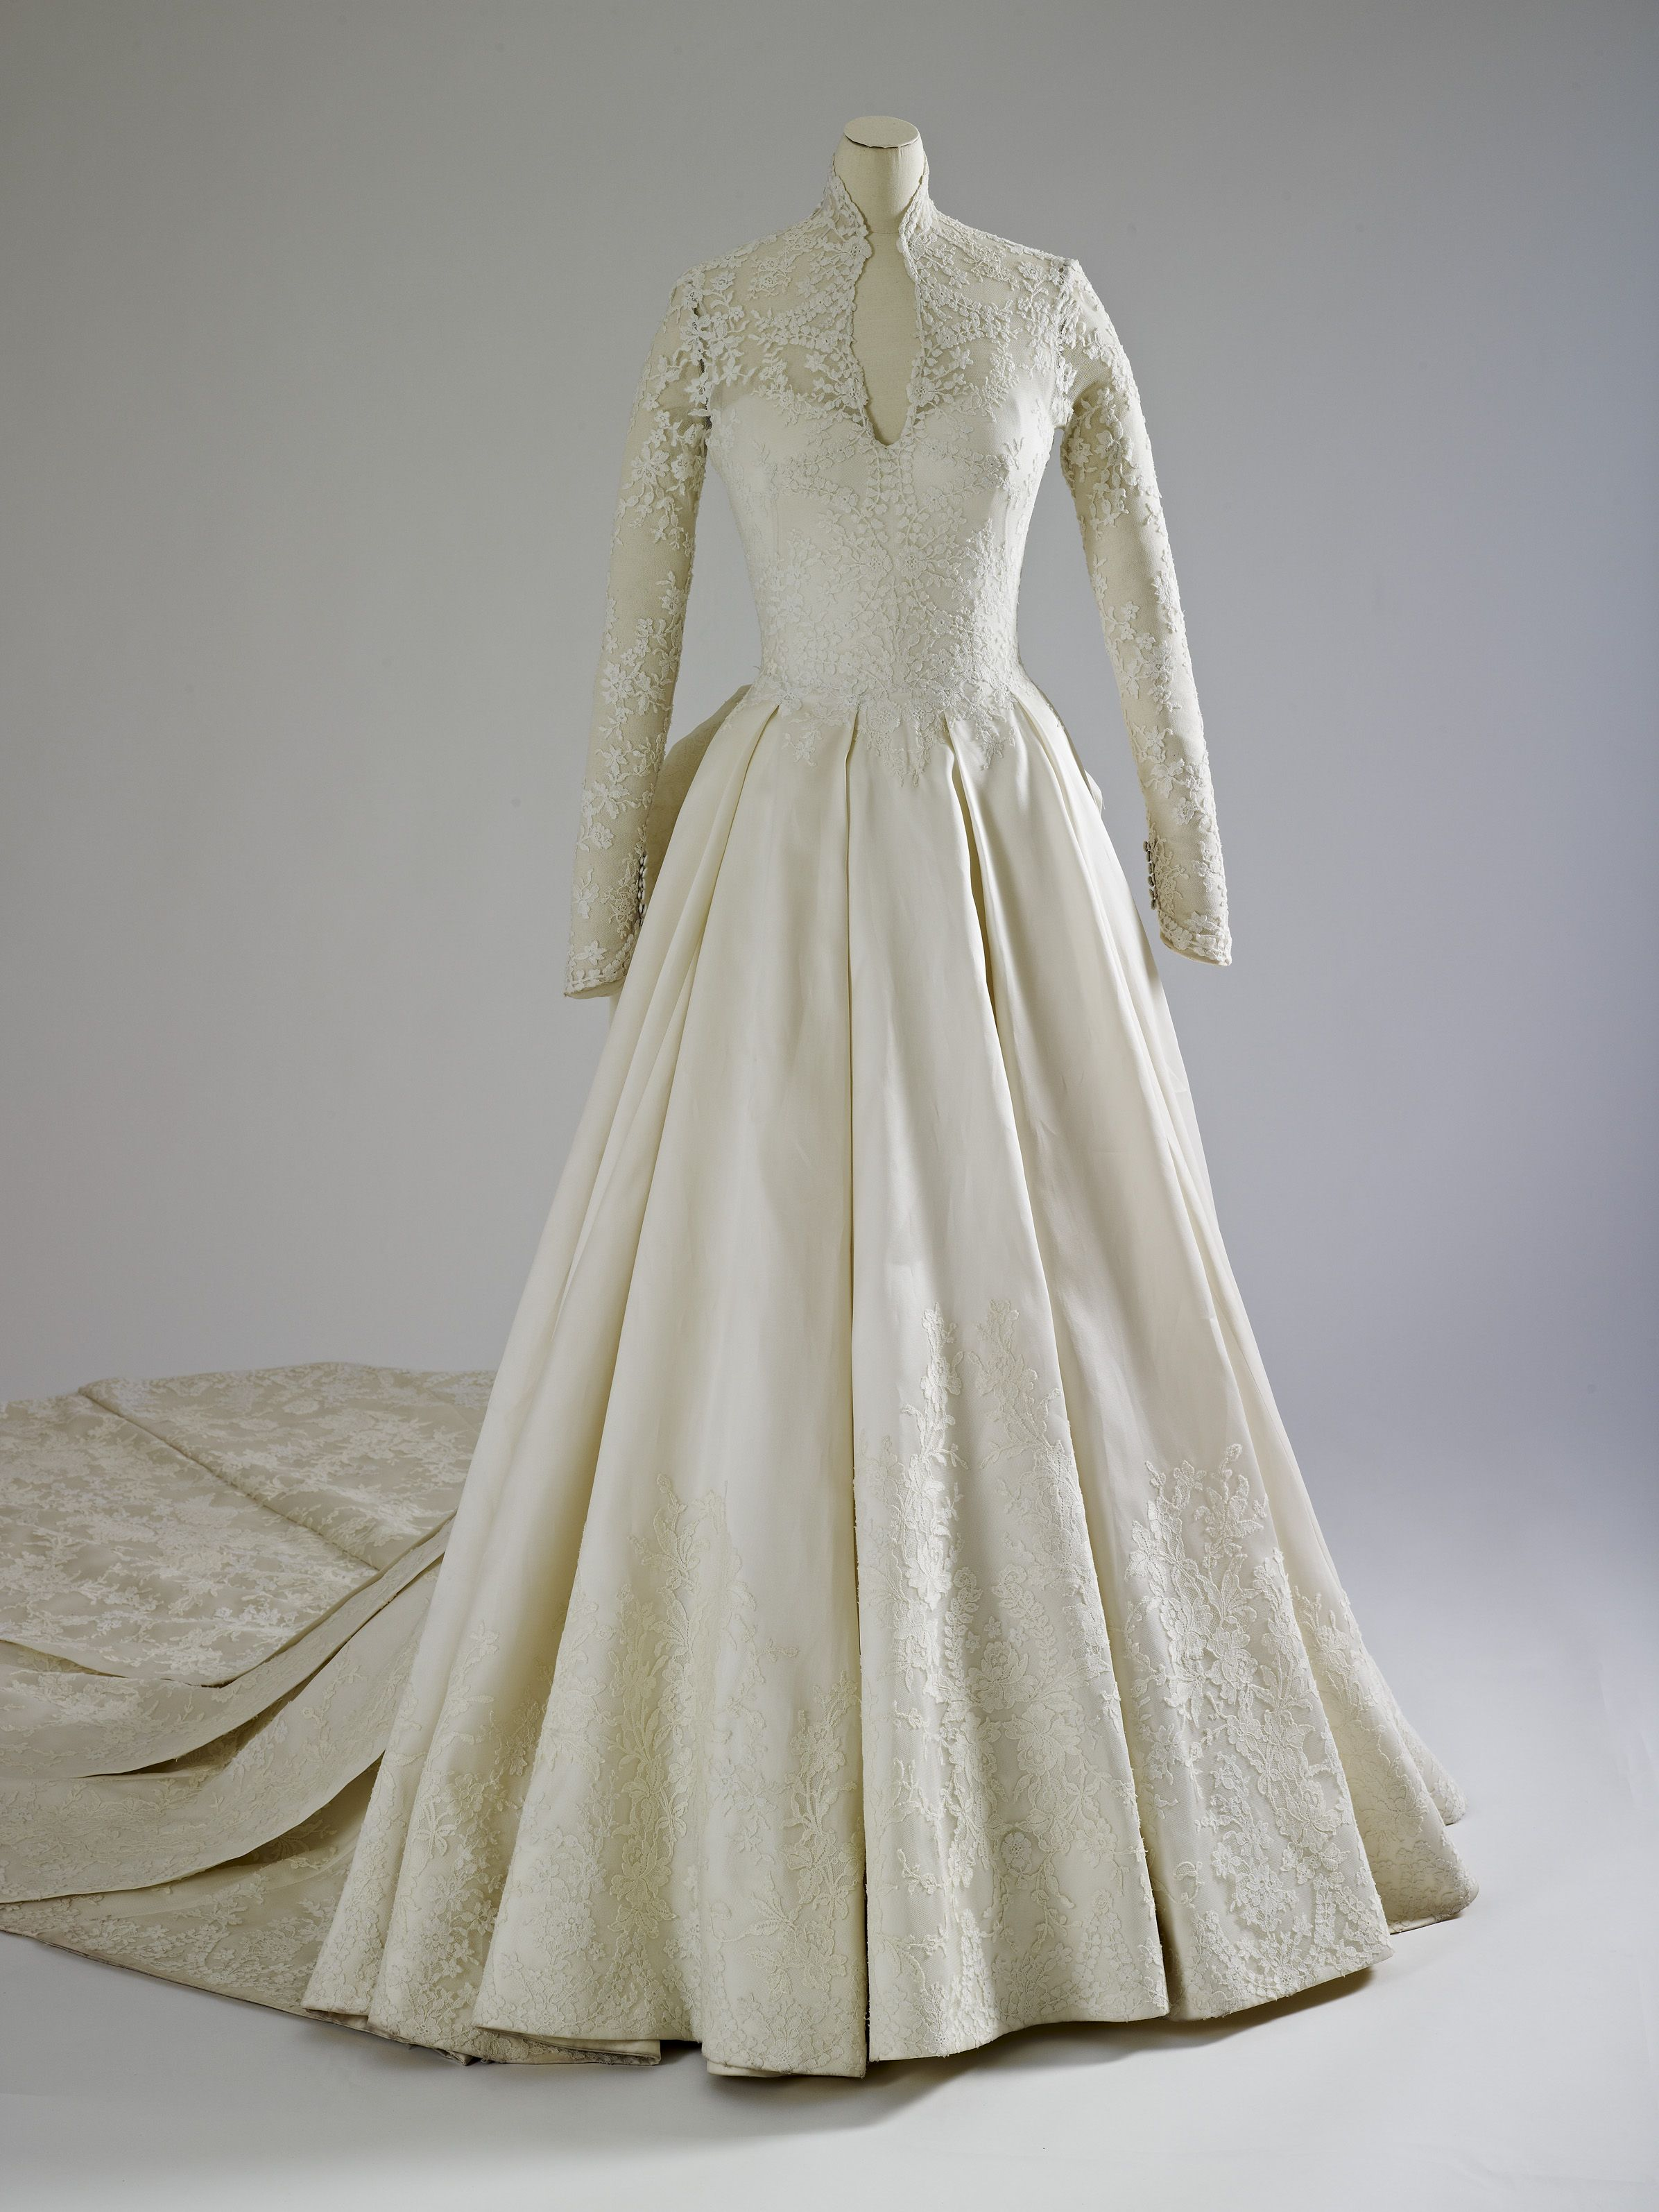 Ten things I learned at the royal wedding dress exhibition | Kate ...